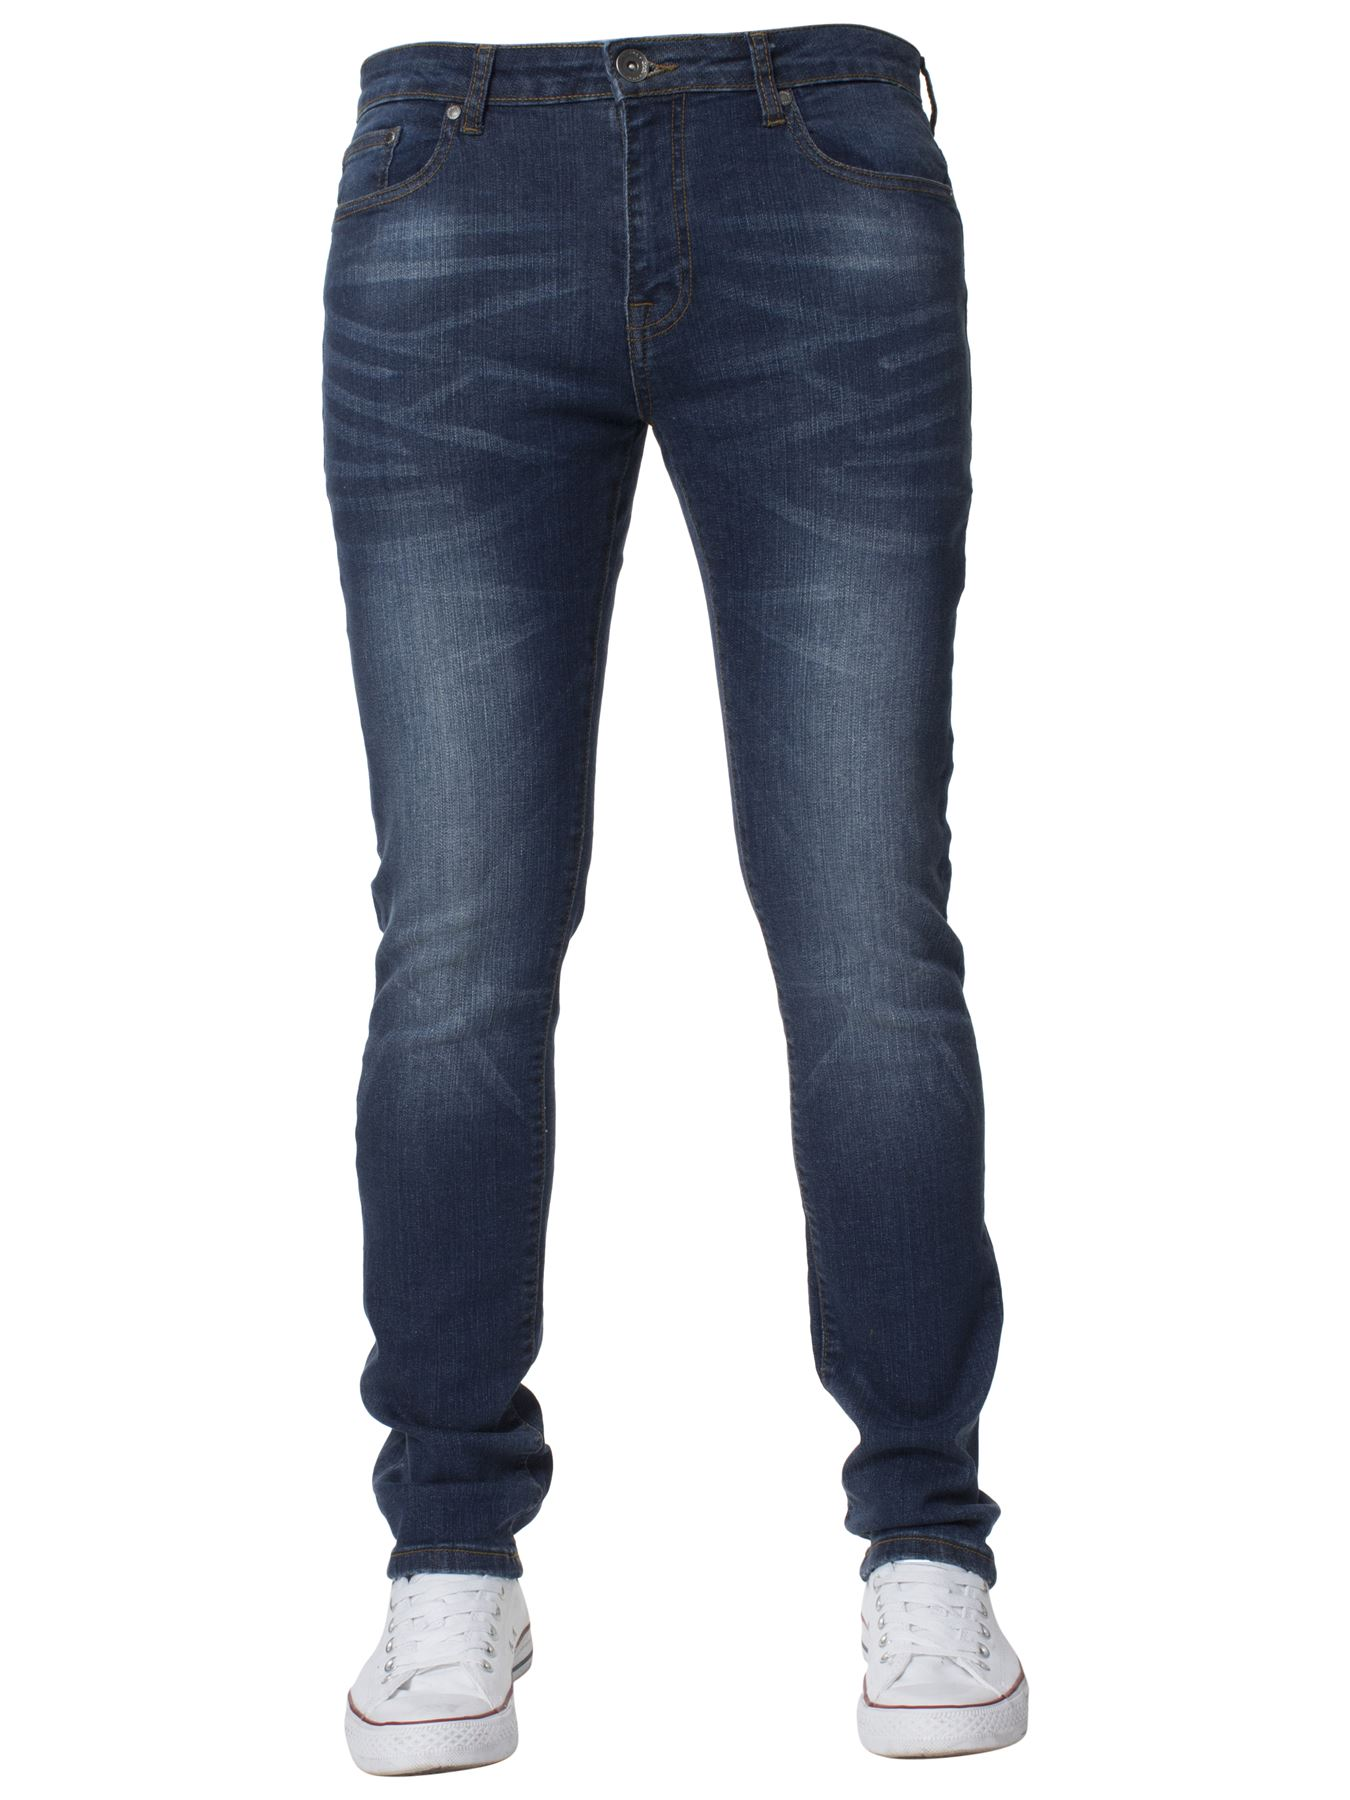 Mens-Skinny-Stretch-Jeans-Slim-Fit-Flex-Denim-Trousers-Pants-King-Sizes-by-Kruze thumbnail 10